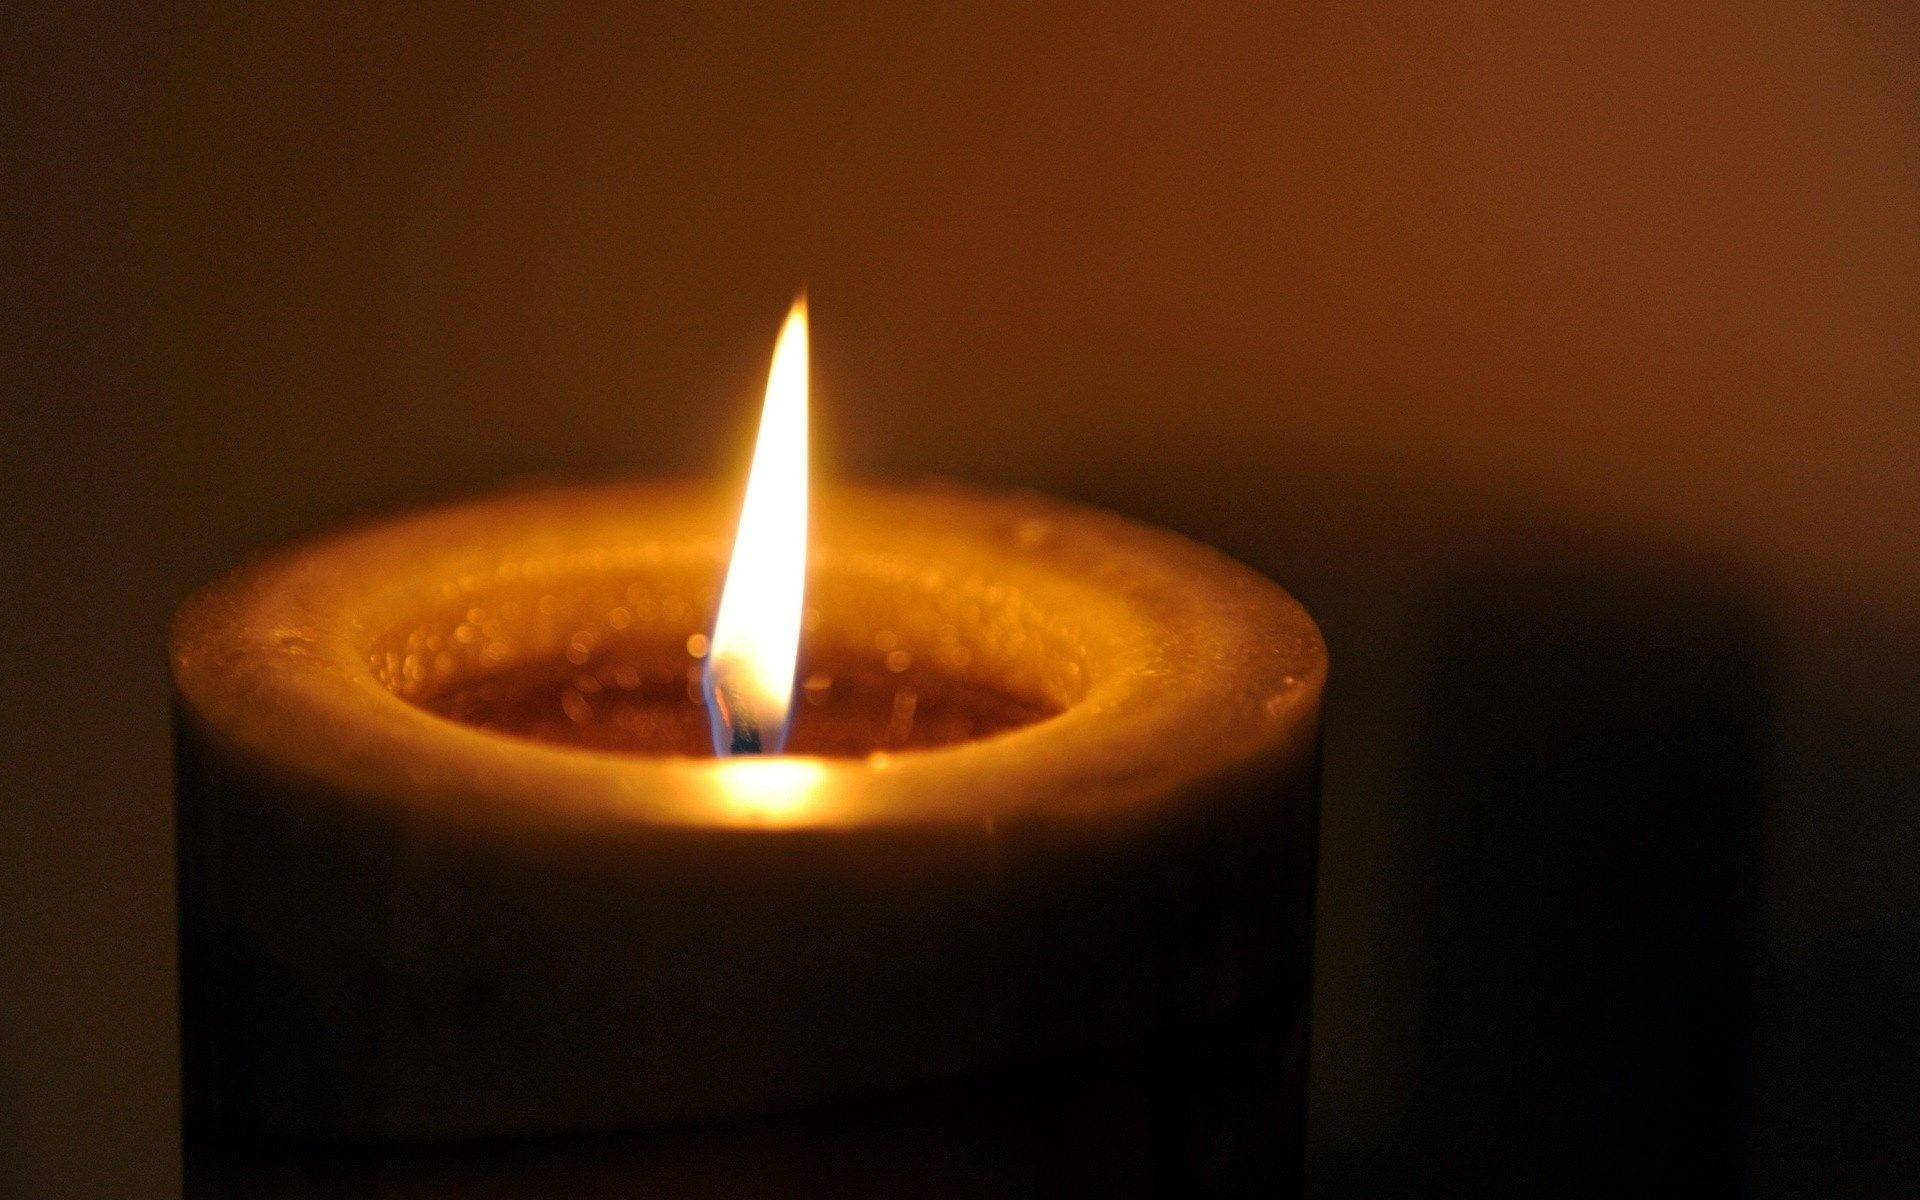 Candle Light HD Wallpaper, Candle Light Images, New Wallpapers